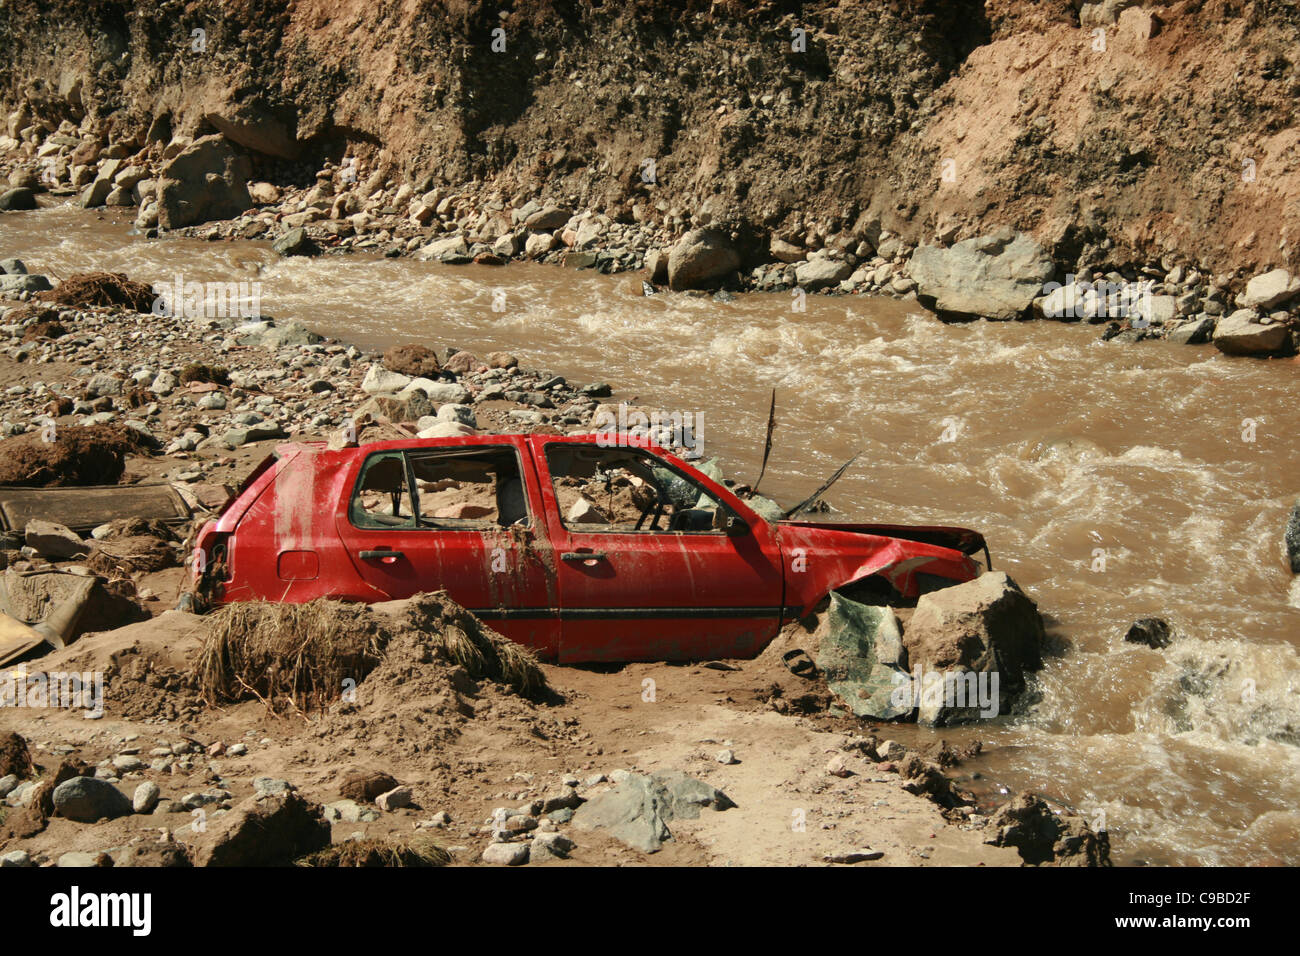 Car fallen into the river during debris-flow flood after glacial lake outburst, Zyndan valley, Tien-Shan, Kyrgyzstan Stock Photo